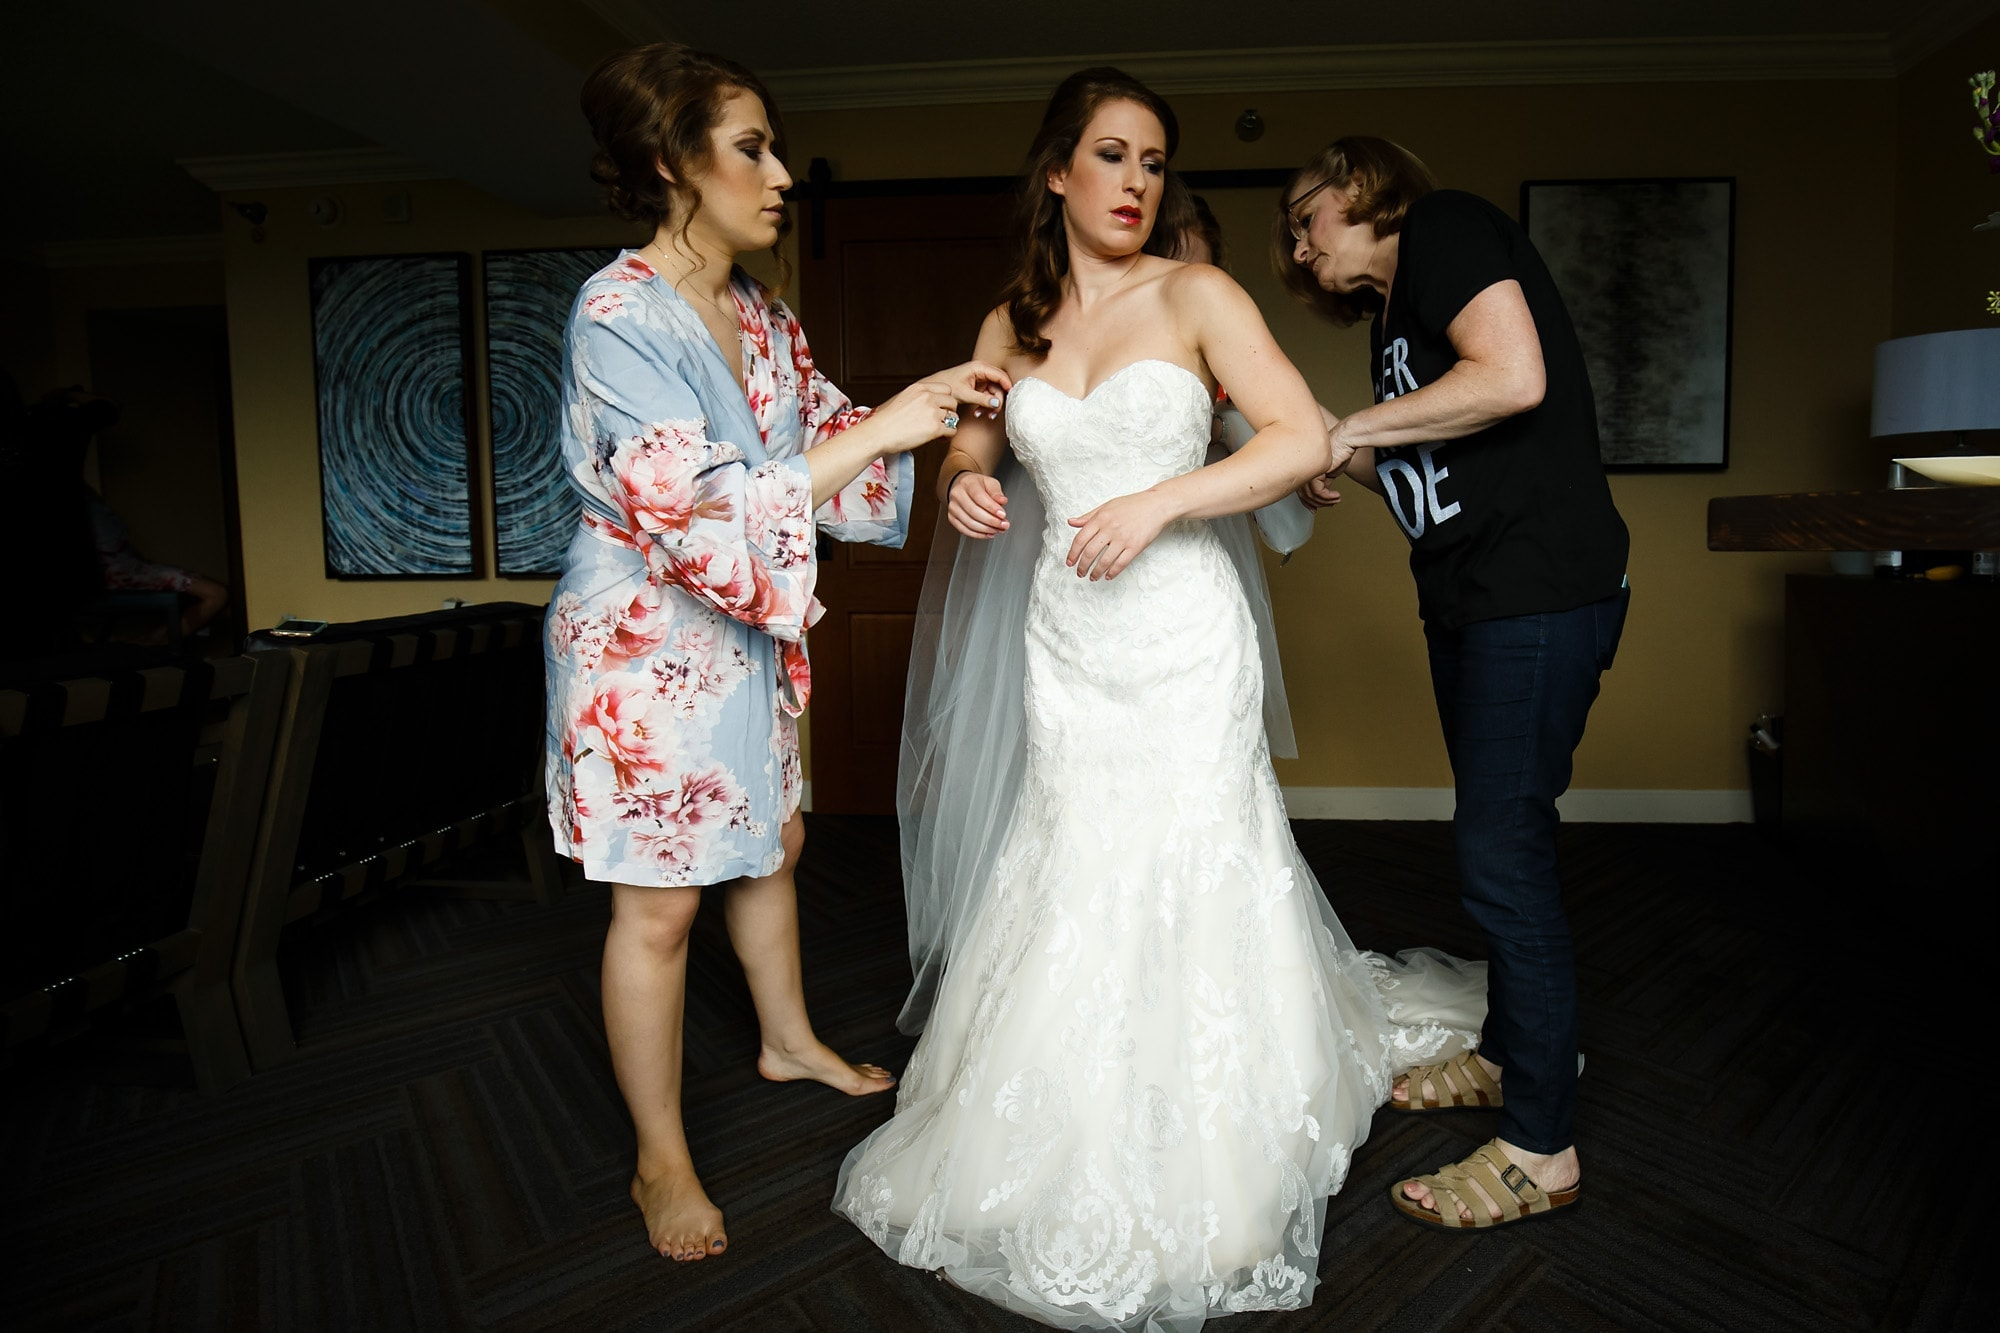 Devan gets into her wedding gown dress with the help of his sisters and mother